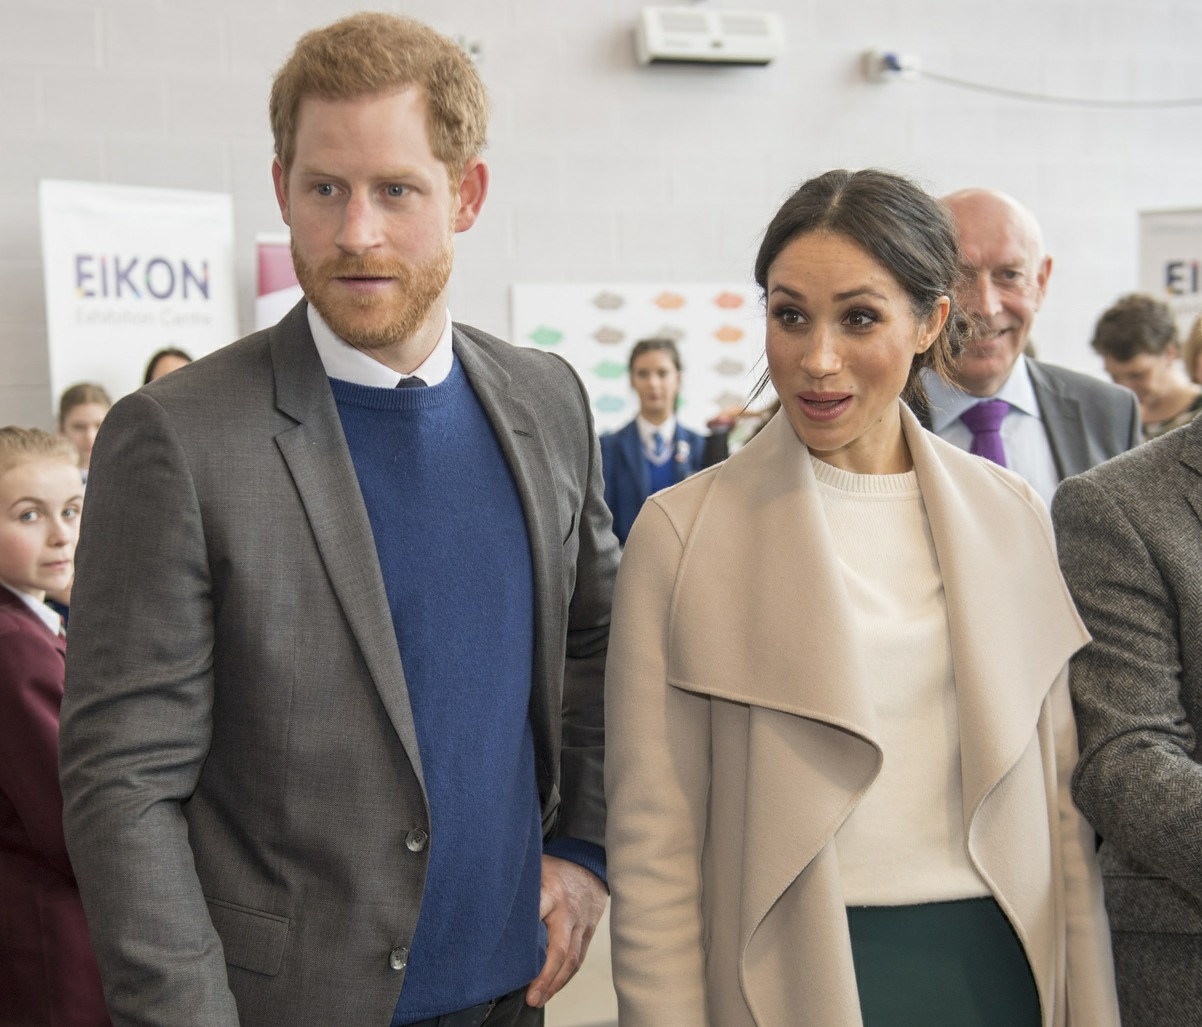 Prince Harry and Meghan Markle visit the Eikon Centre in Lisburn, Northern Ireland, to attend an event to mark the second year of youth-led peace-building initiative Amazing the Space